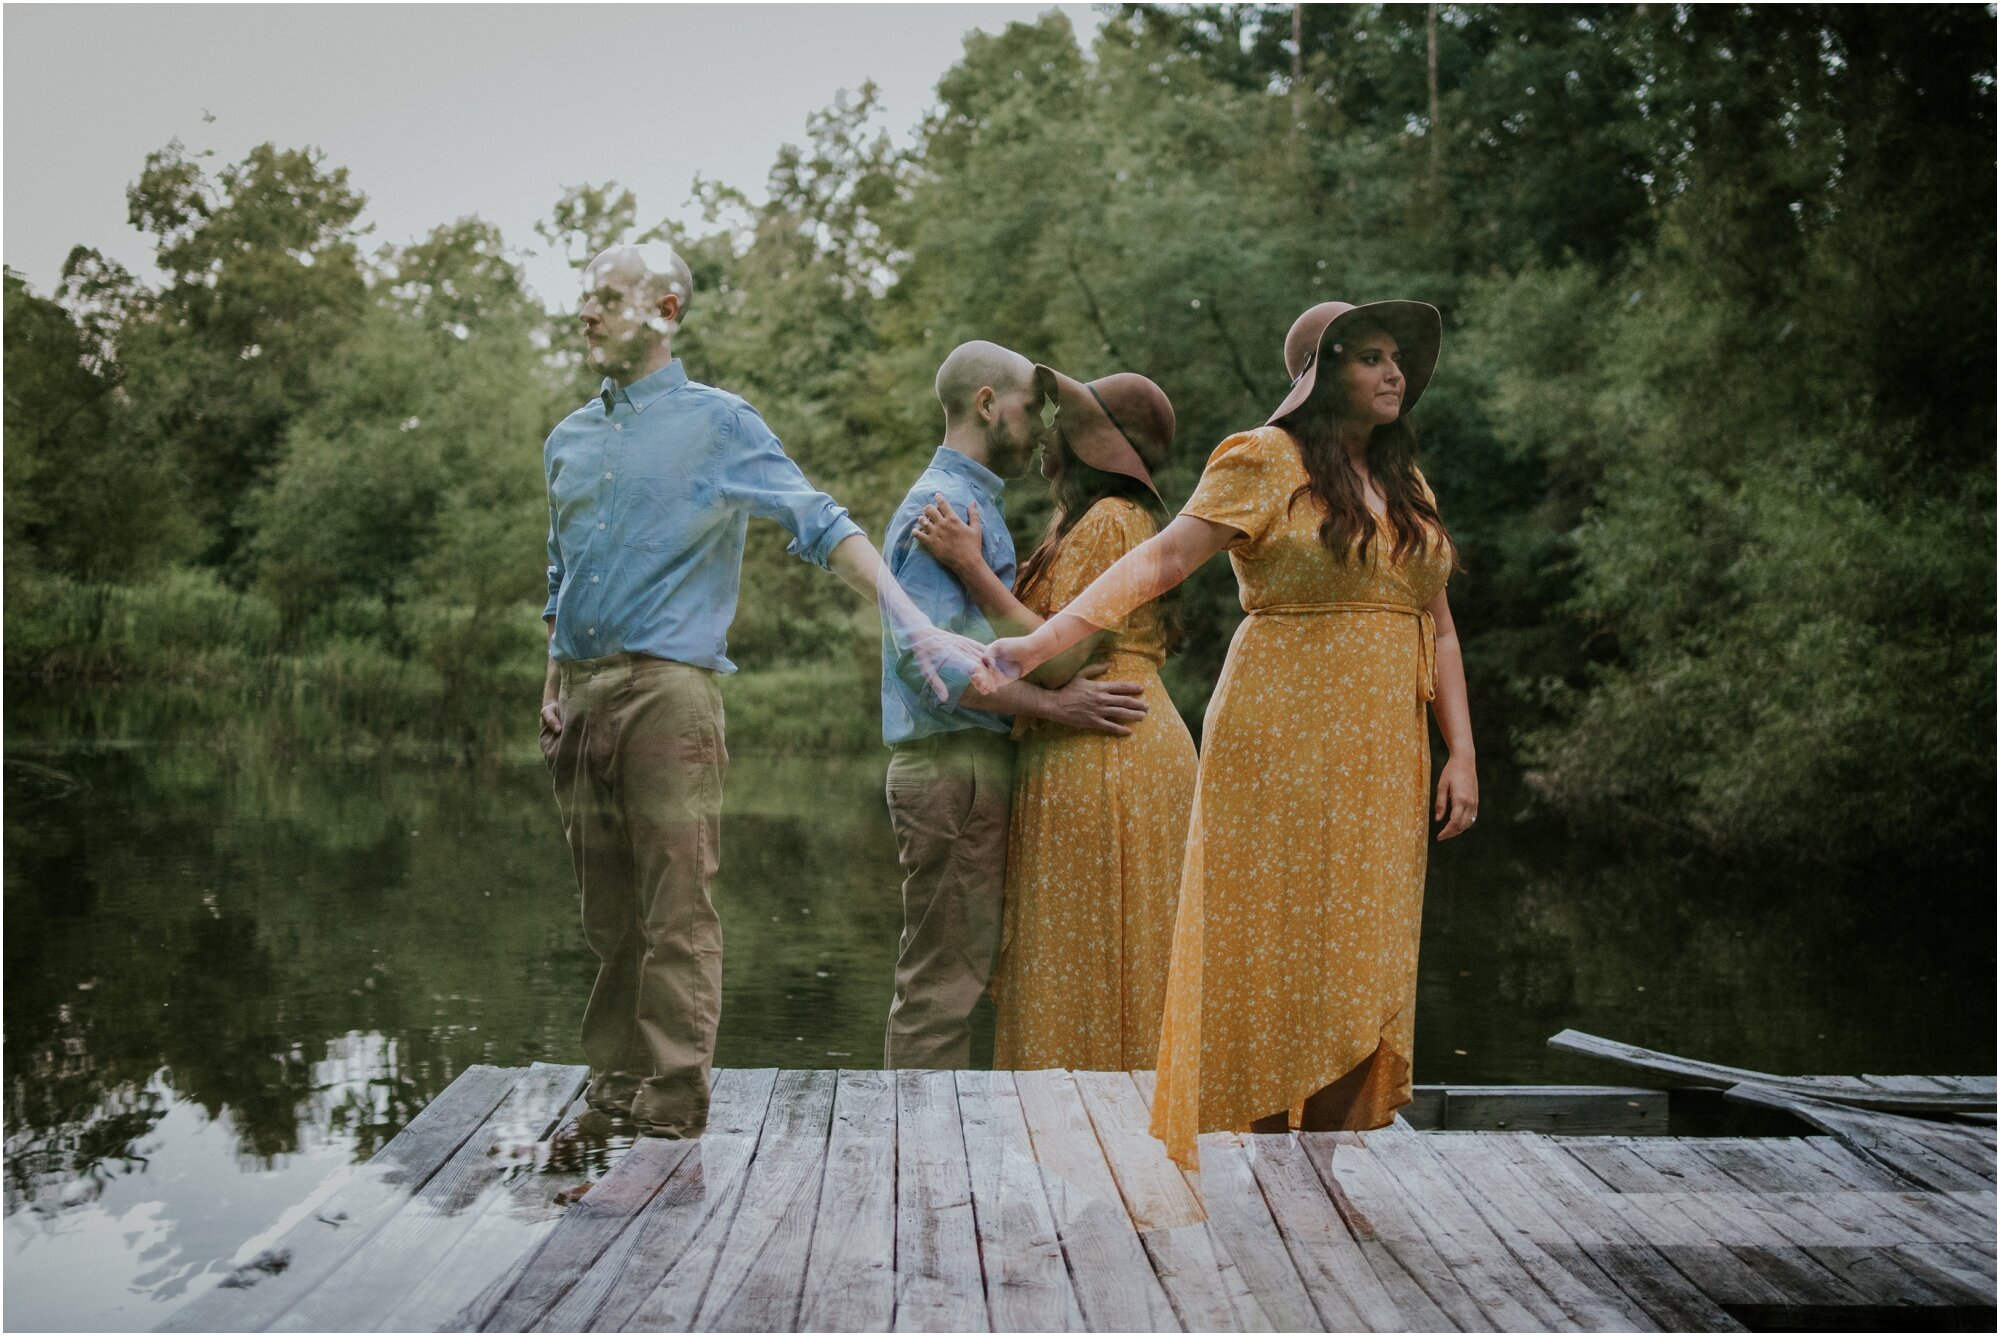 kingsport-tennessee-backyard-pond-bays-mountain-summer-engagement-session_0051.jpg